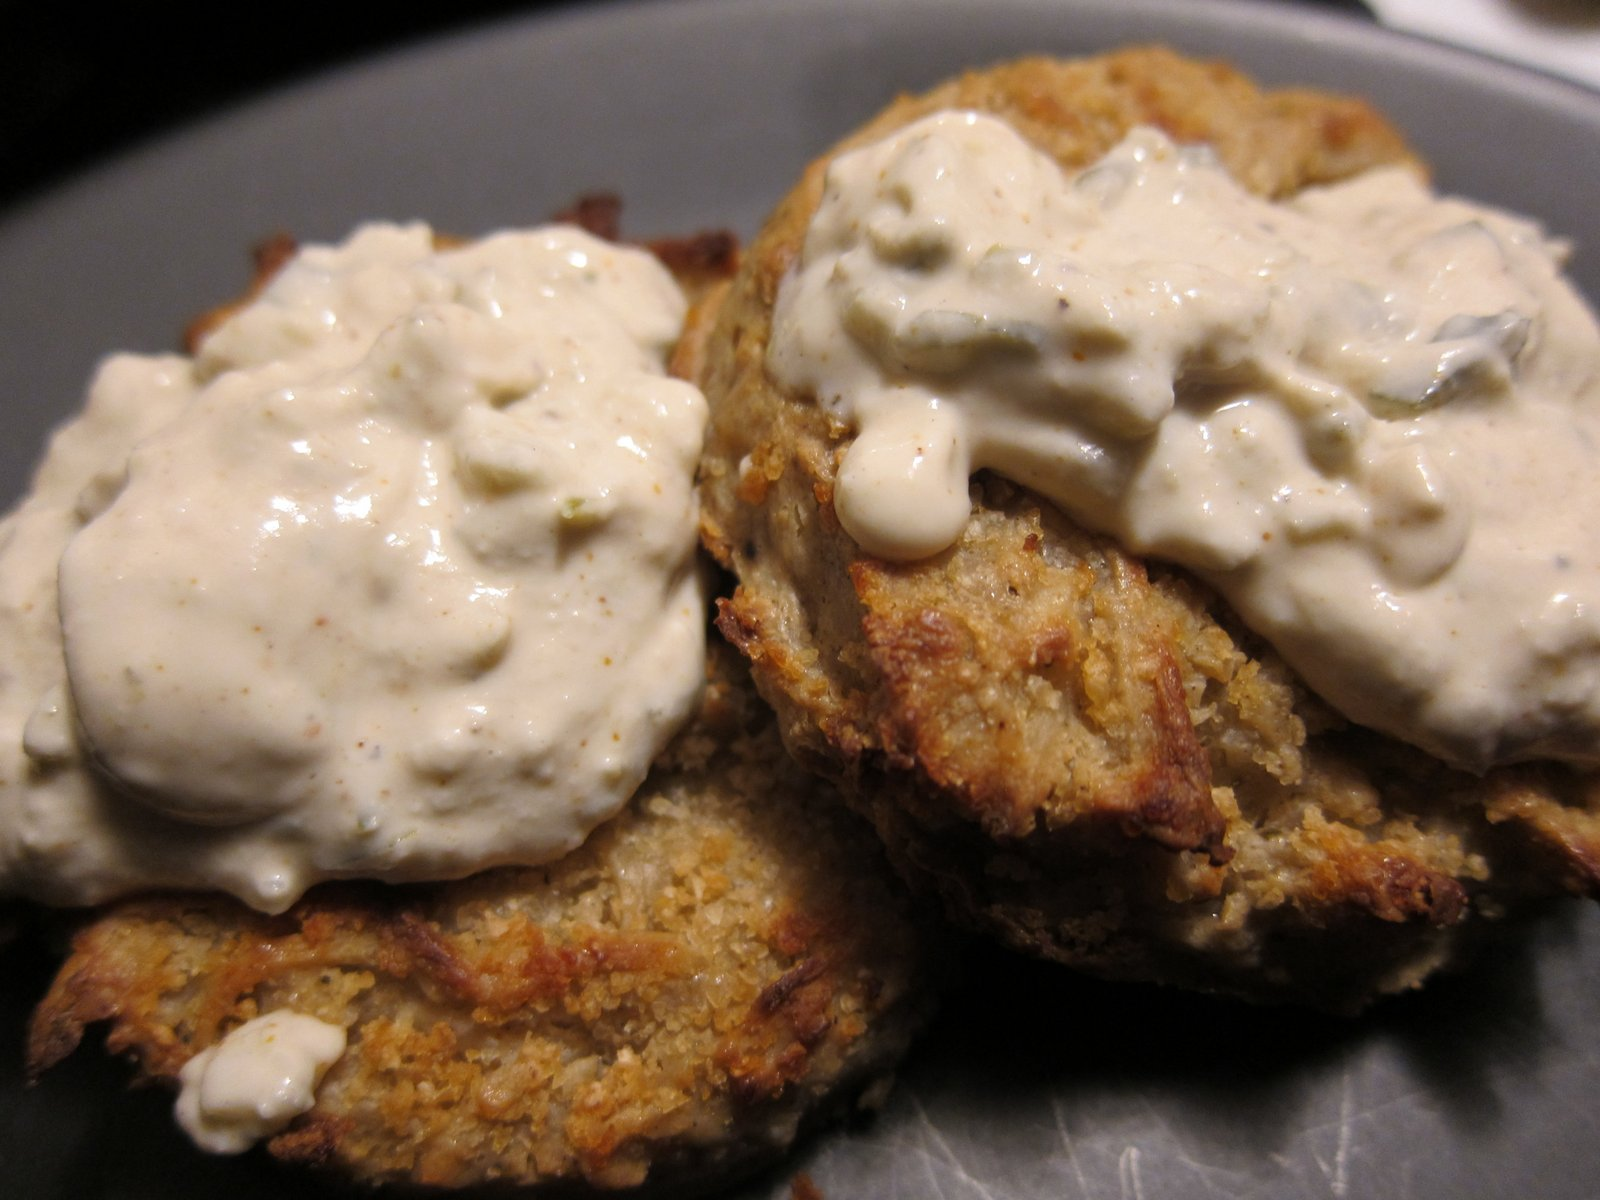 Vegan Crab Cakes with Baked Russet Potato